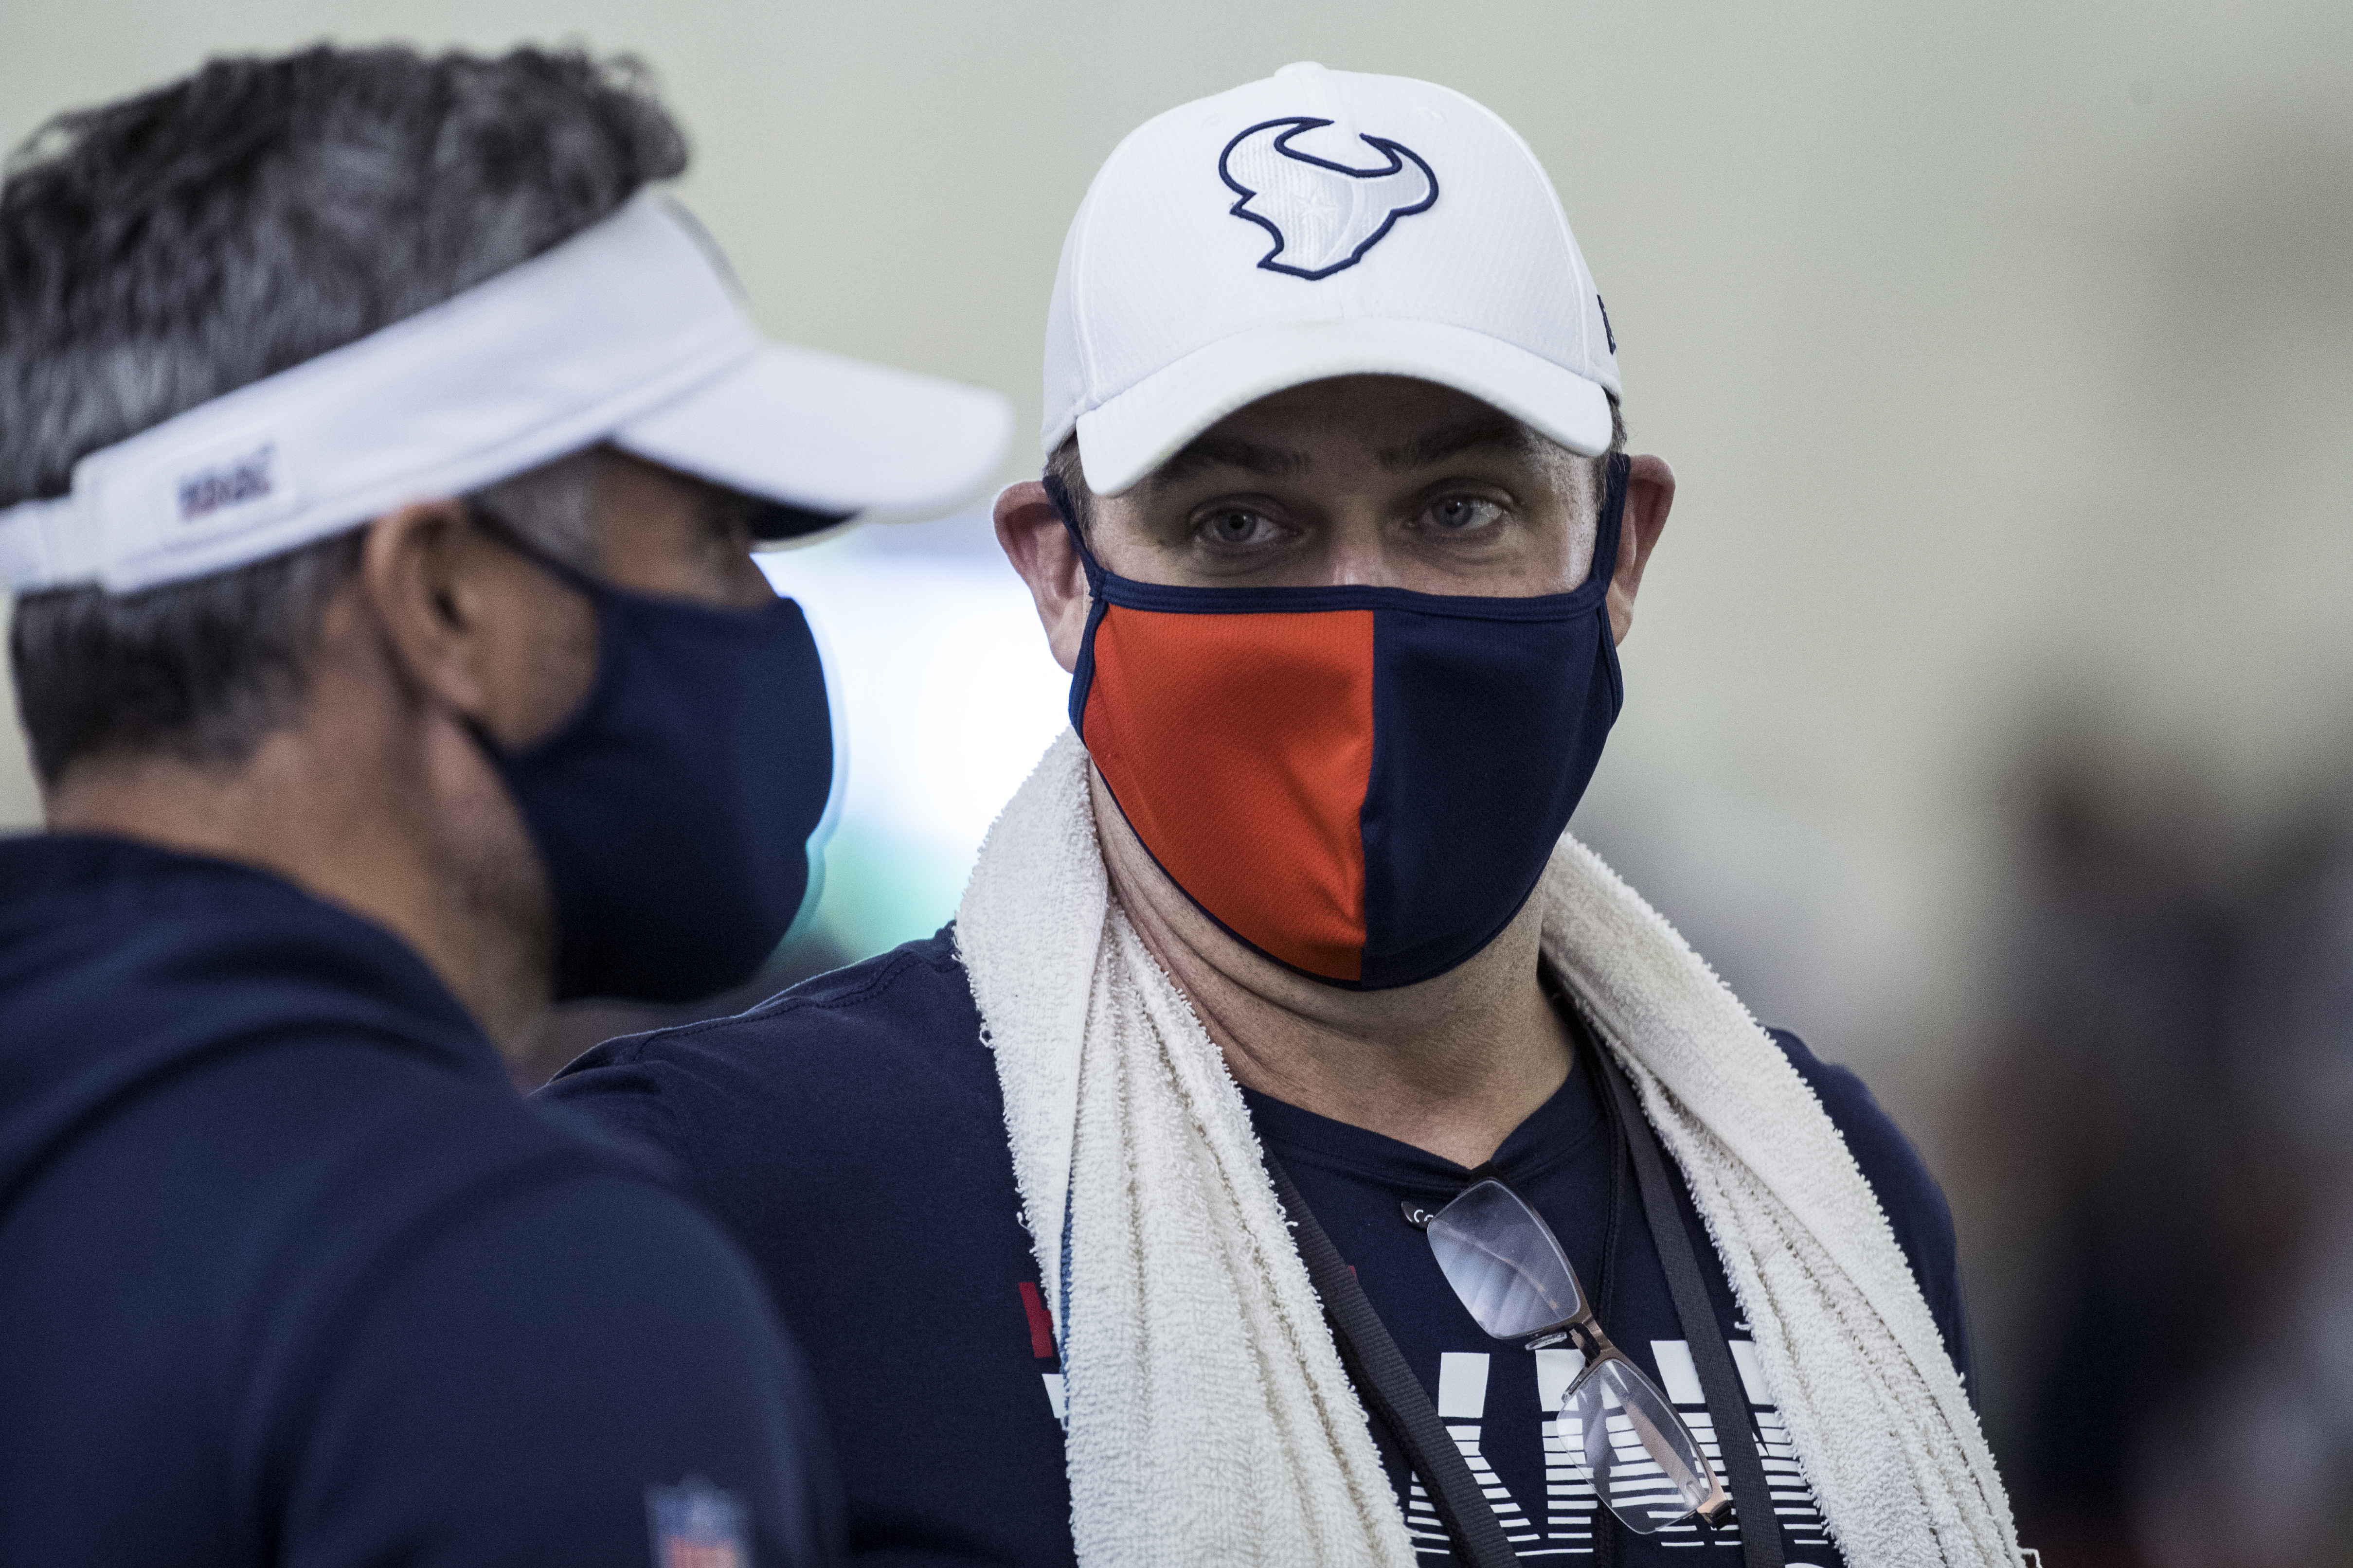 Houston Texans head coach Bill O'Brien enters a critical season. (Brett Coomer/Houston Chronicle via AP)